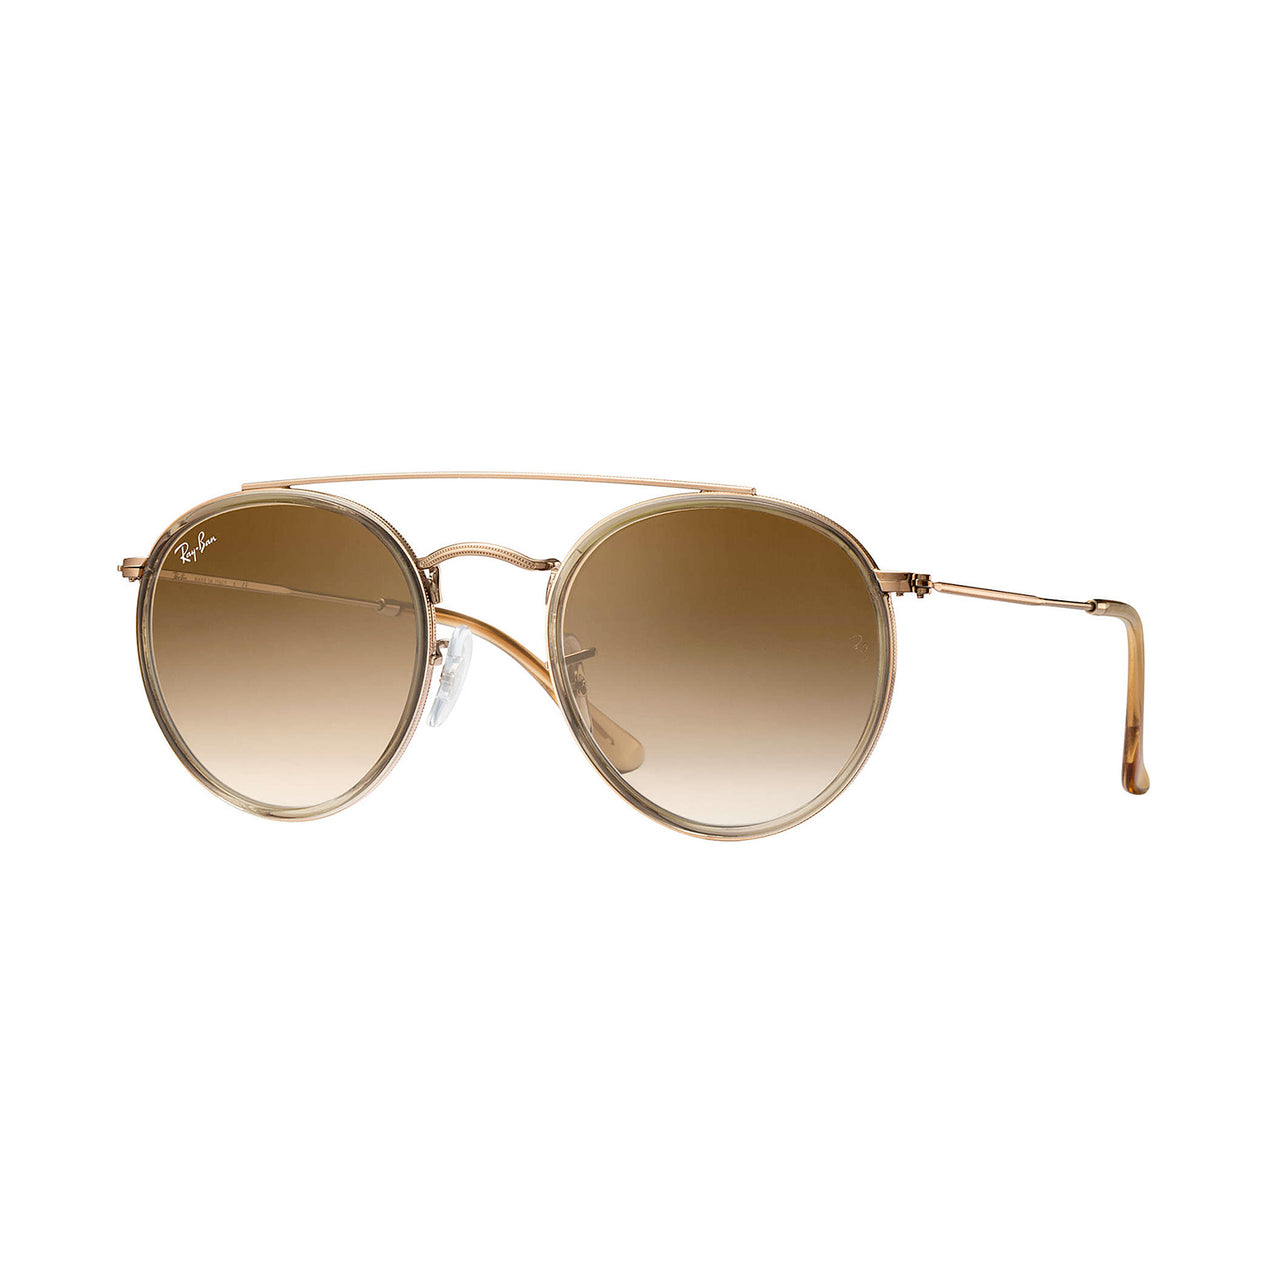 82d9302db6 Ray-Ban Round Double Bridge - Light Brown  Brown Copper Frame - Light Brown  Gradient Lens